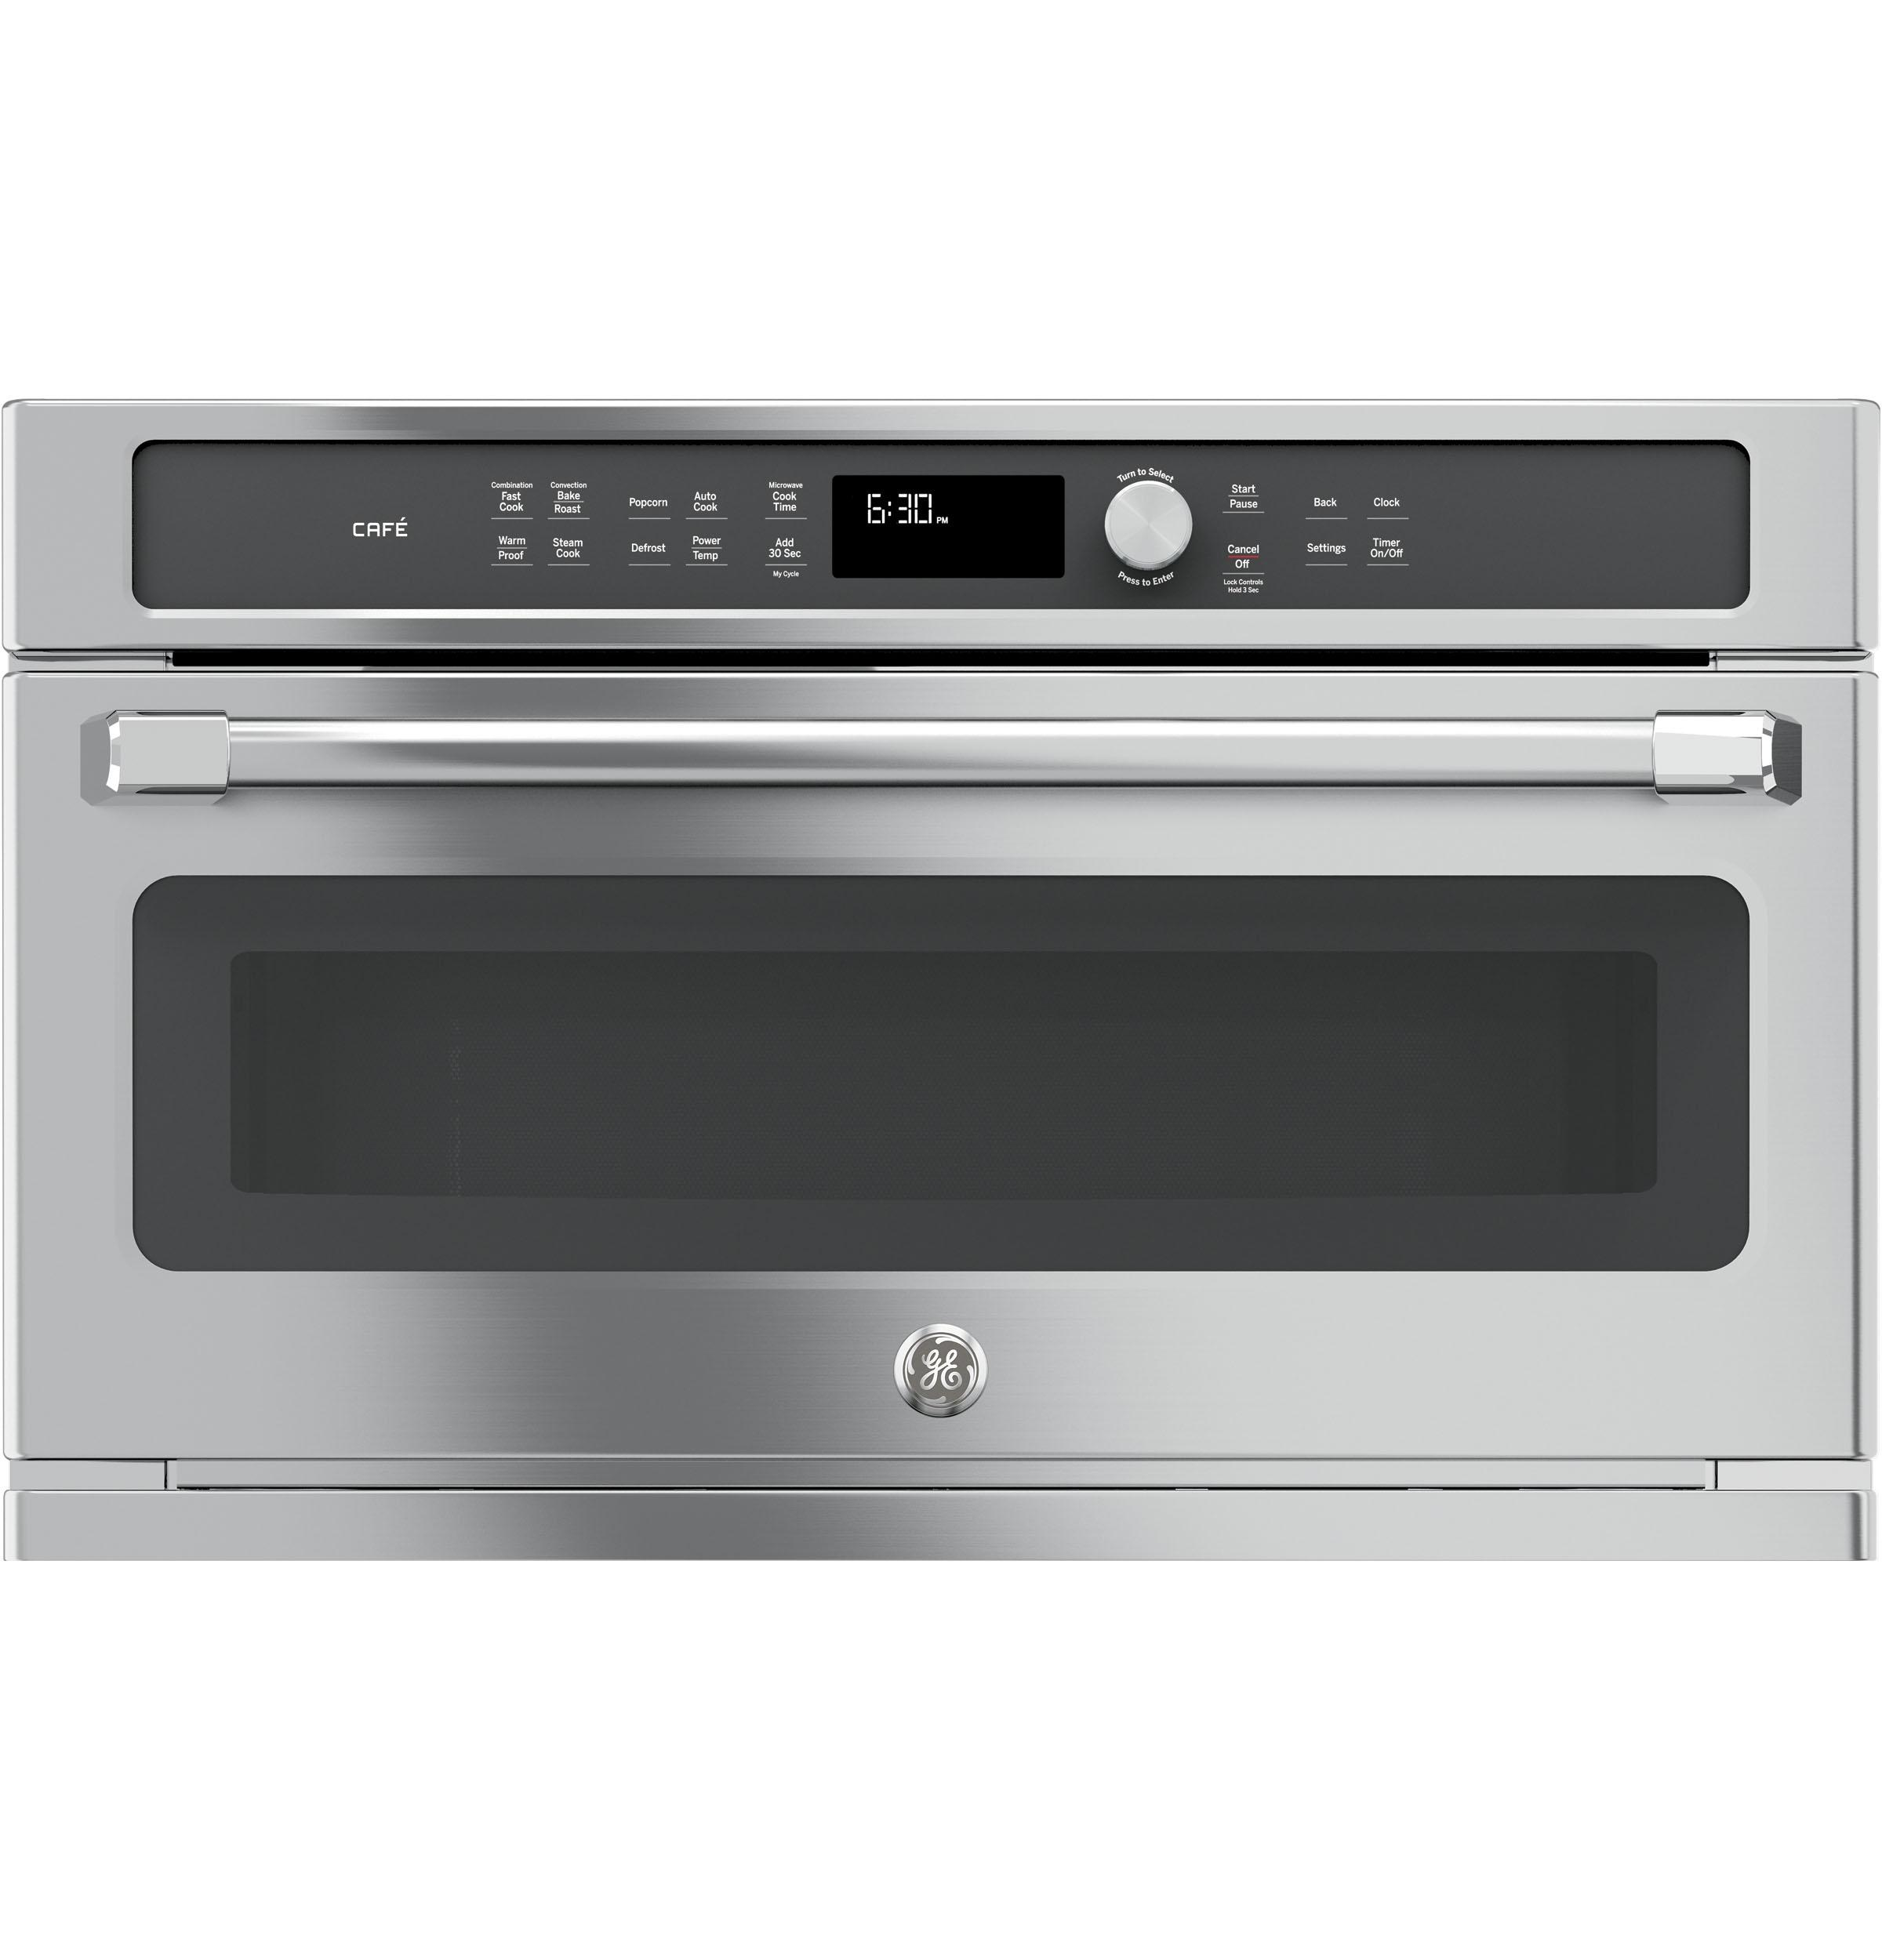 GE Cafe(TM) Series Built-In Microwave/Convection Oven  STAINLESS STEEL